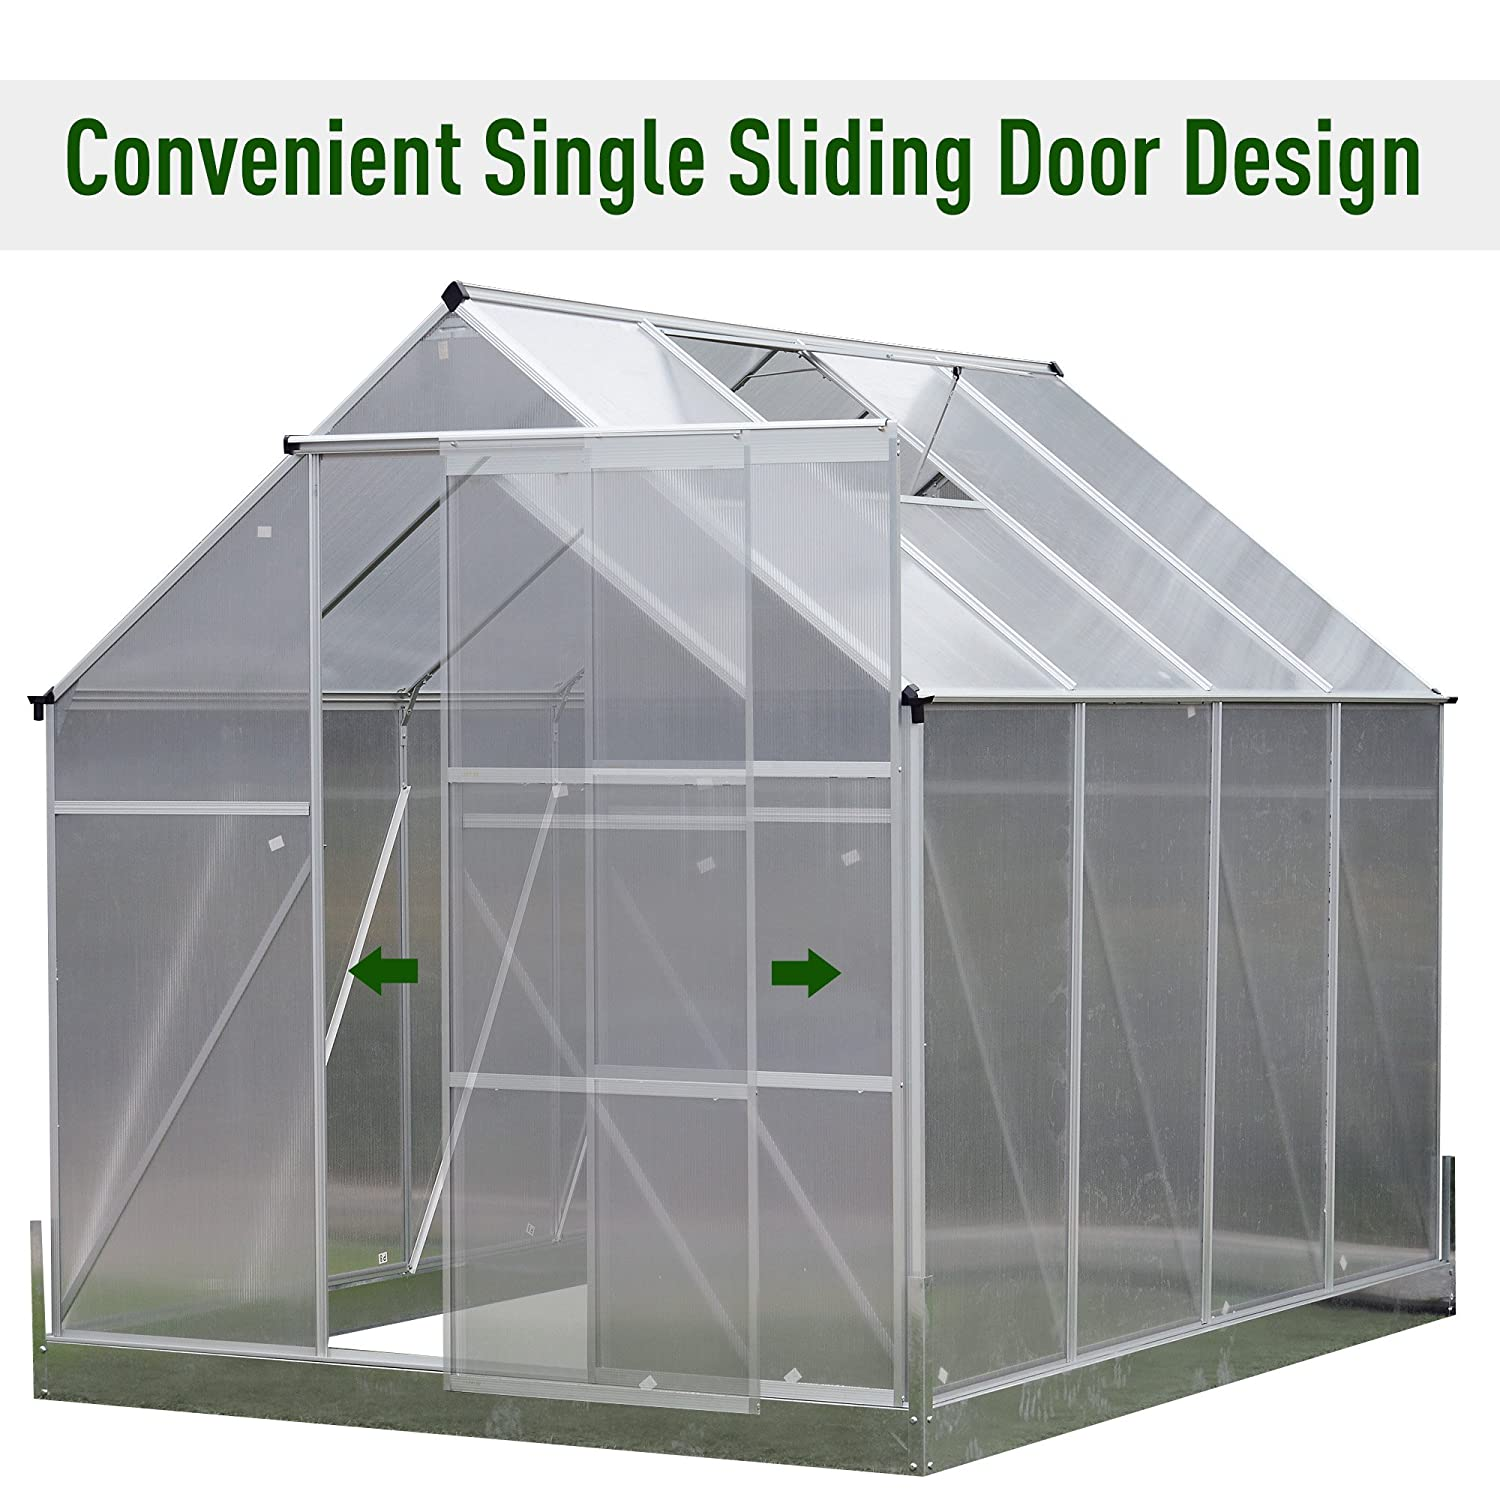 Amazon.com : Outsunny Aluminum 8'L x 6'W x 7'H Polycarbonate ... on greenhouse cabinets, easy greenhouse plans, big greenhouse plans, backyard greenhouse plans, greenhouse garden designs, winter greenhouse plans, small greenhouse plans, attached greenhouse plans, homemade greenhouse plans, lean to greenhouse plans, diy greenhouse plans, pvc greenhouse plans, solar greenhouse plans, greenhouse architecture, greenhouse ideas, greenhouse layout, greenhouse windows, wood greenhouse plans, a-frame greenhouse plans, hobby greenhouse plans,